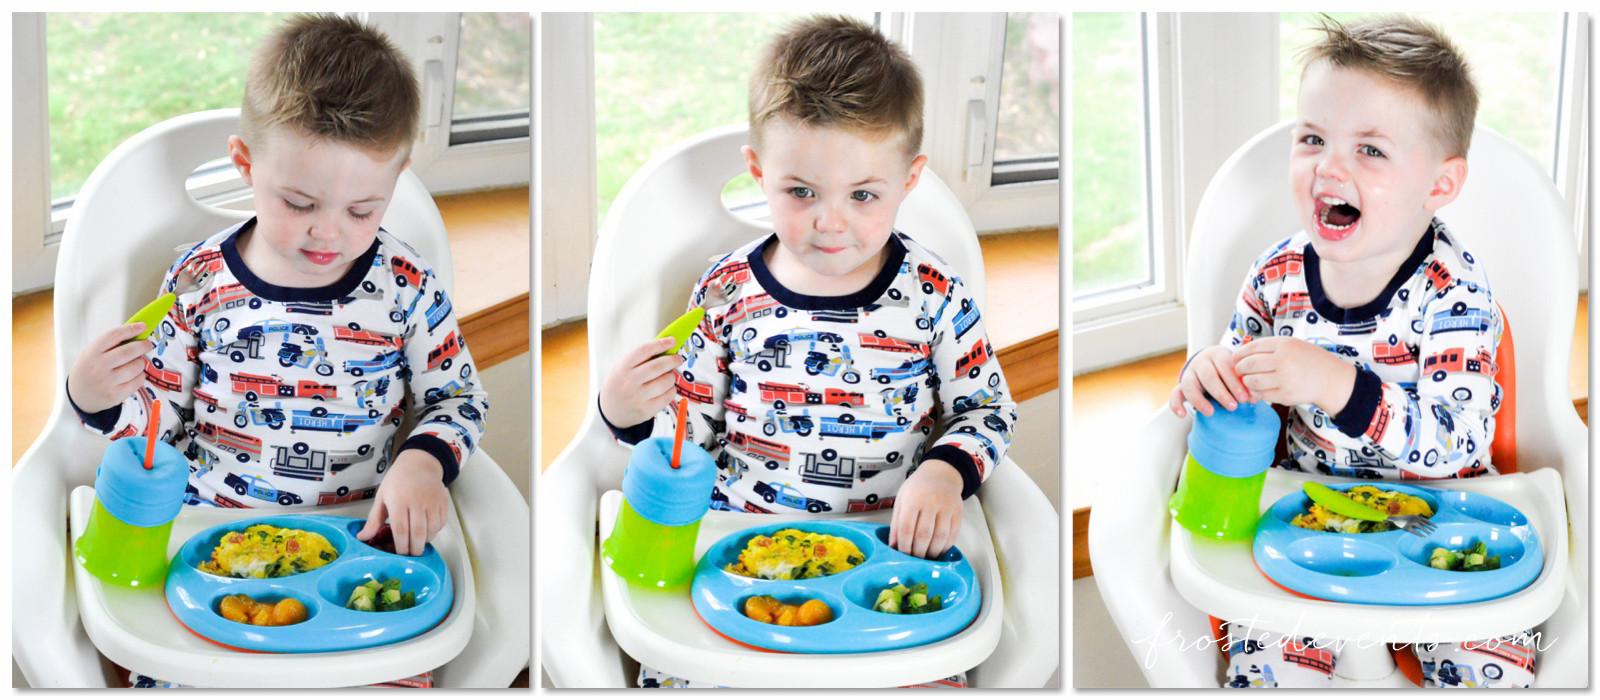 Boon Makes Toddler Mealtime and Clean Up So Much Easier!